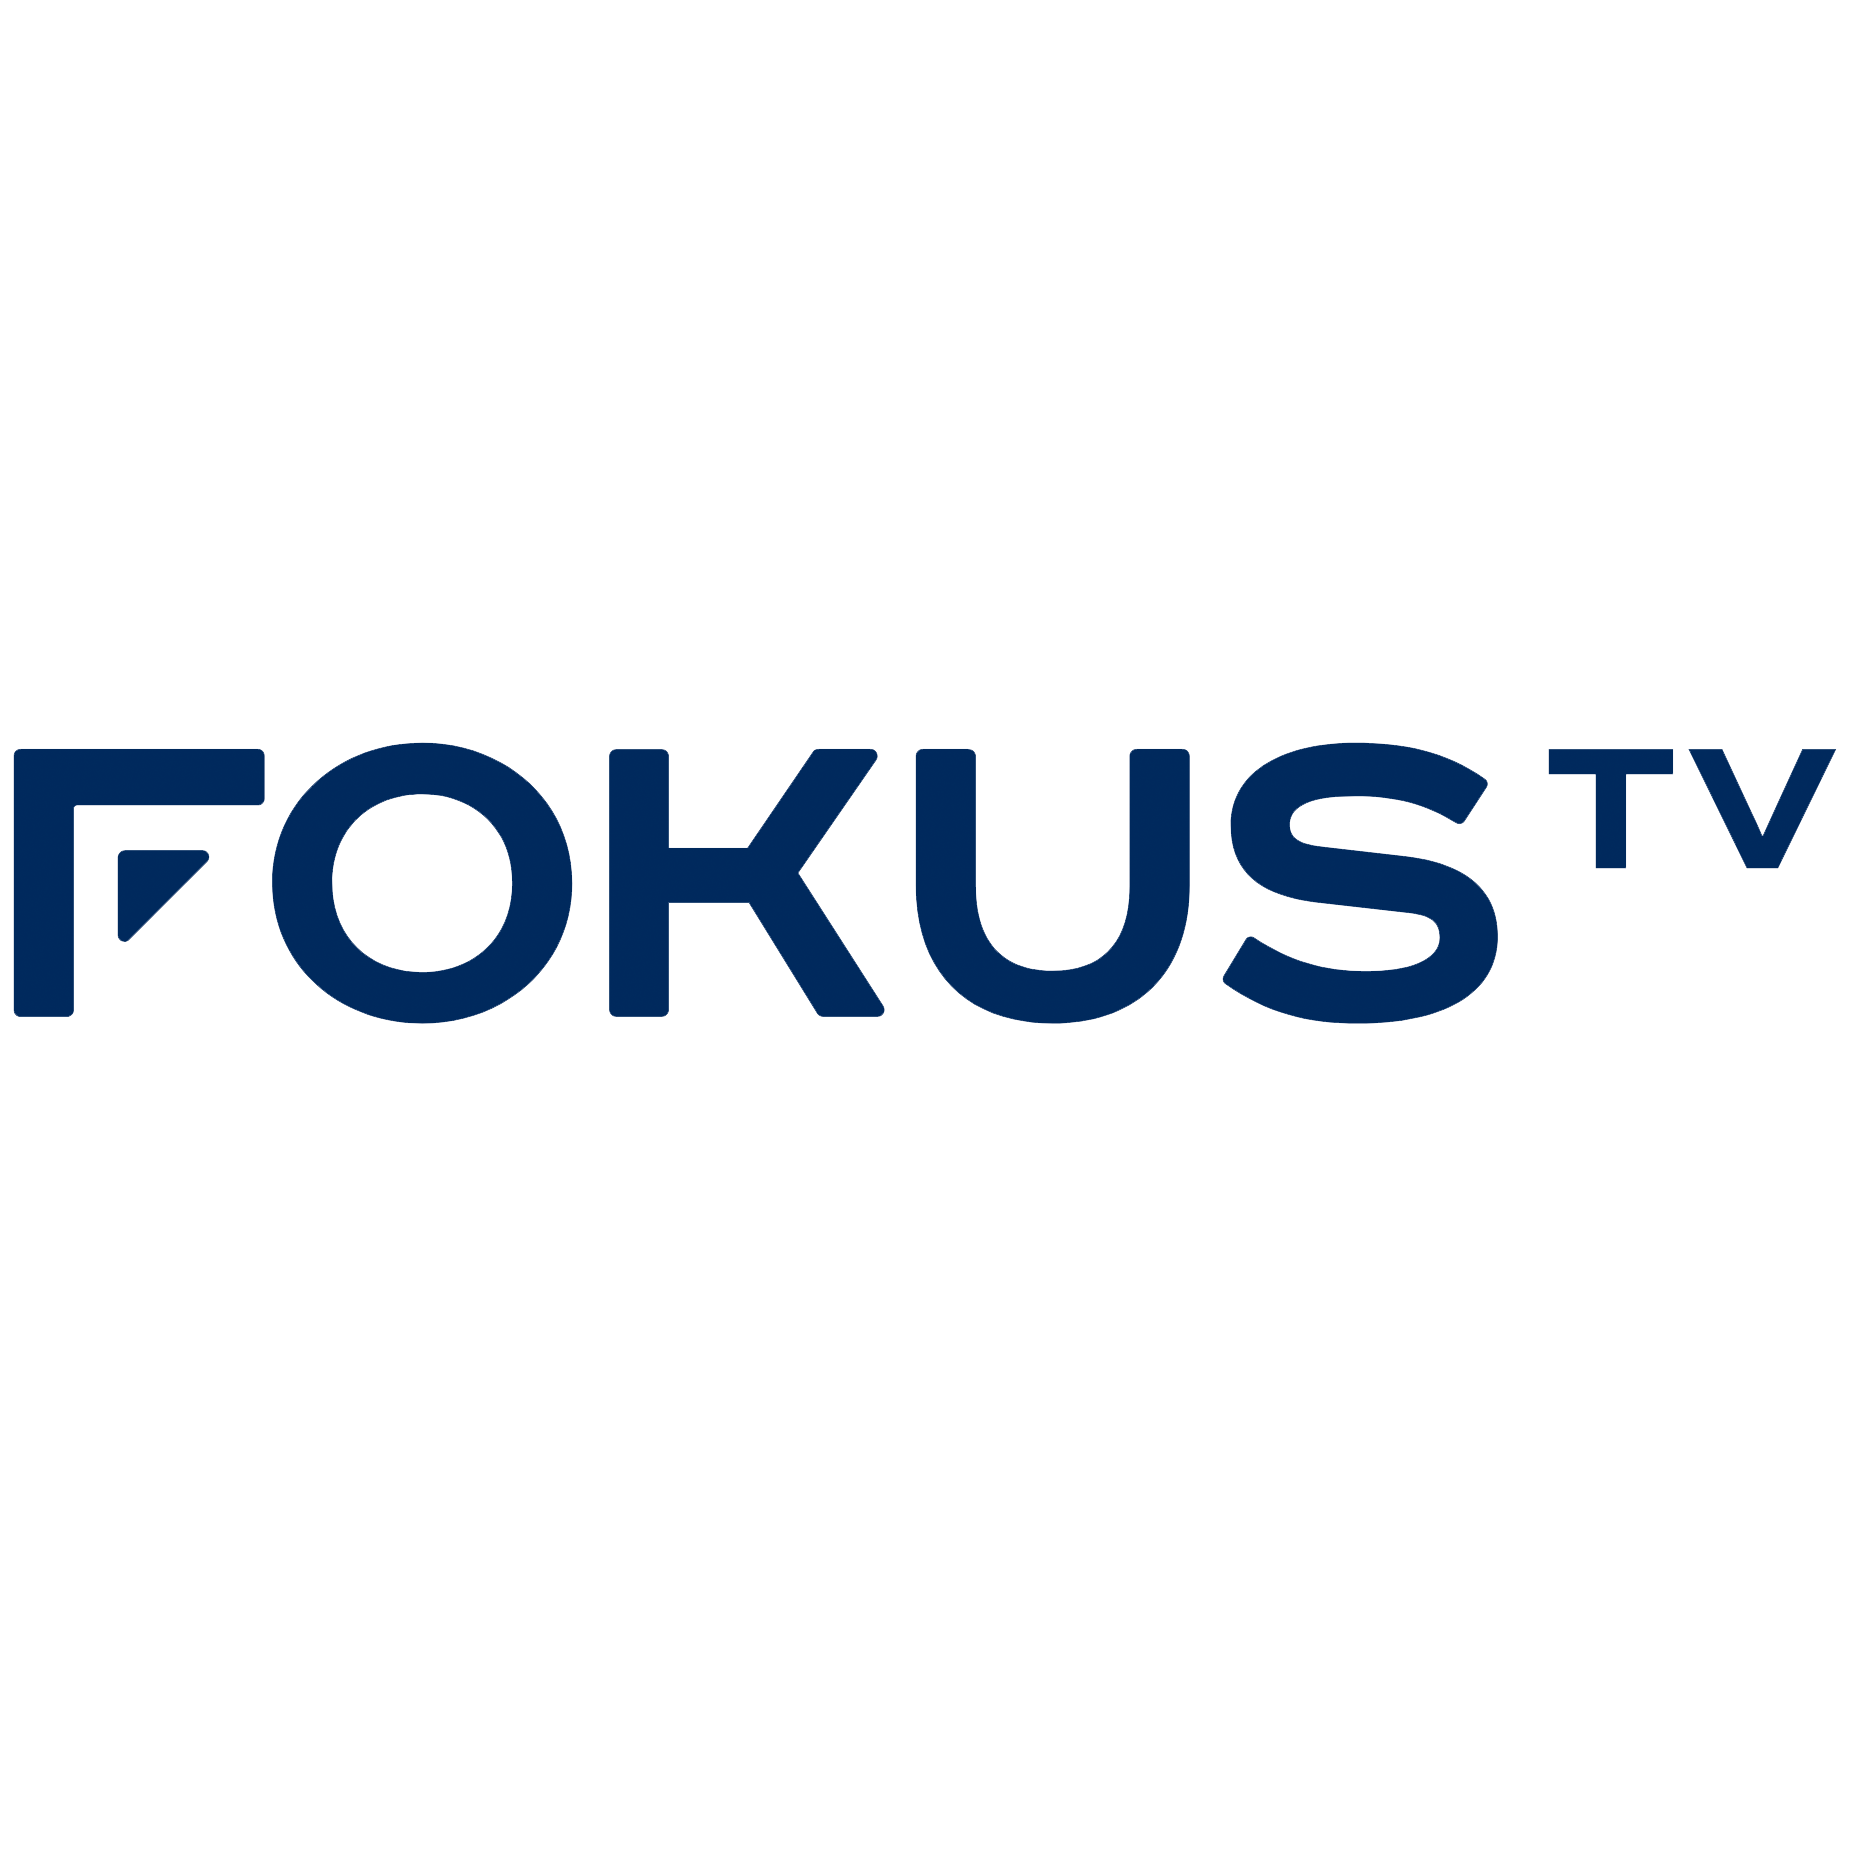 Fokus TV